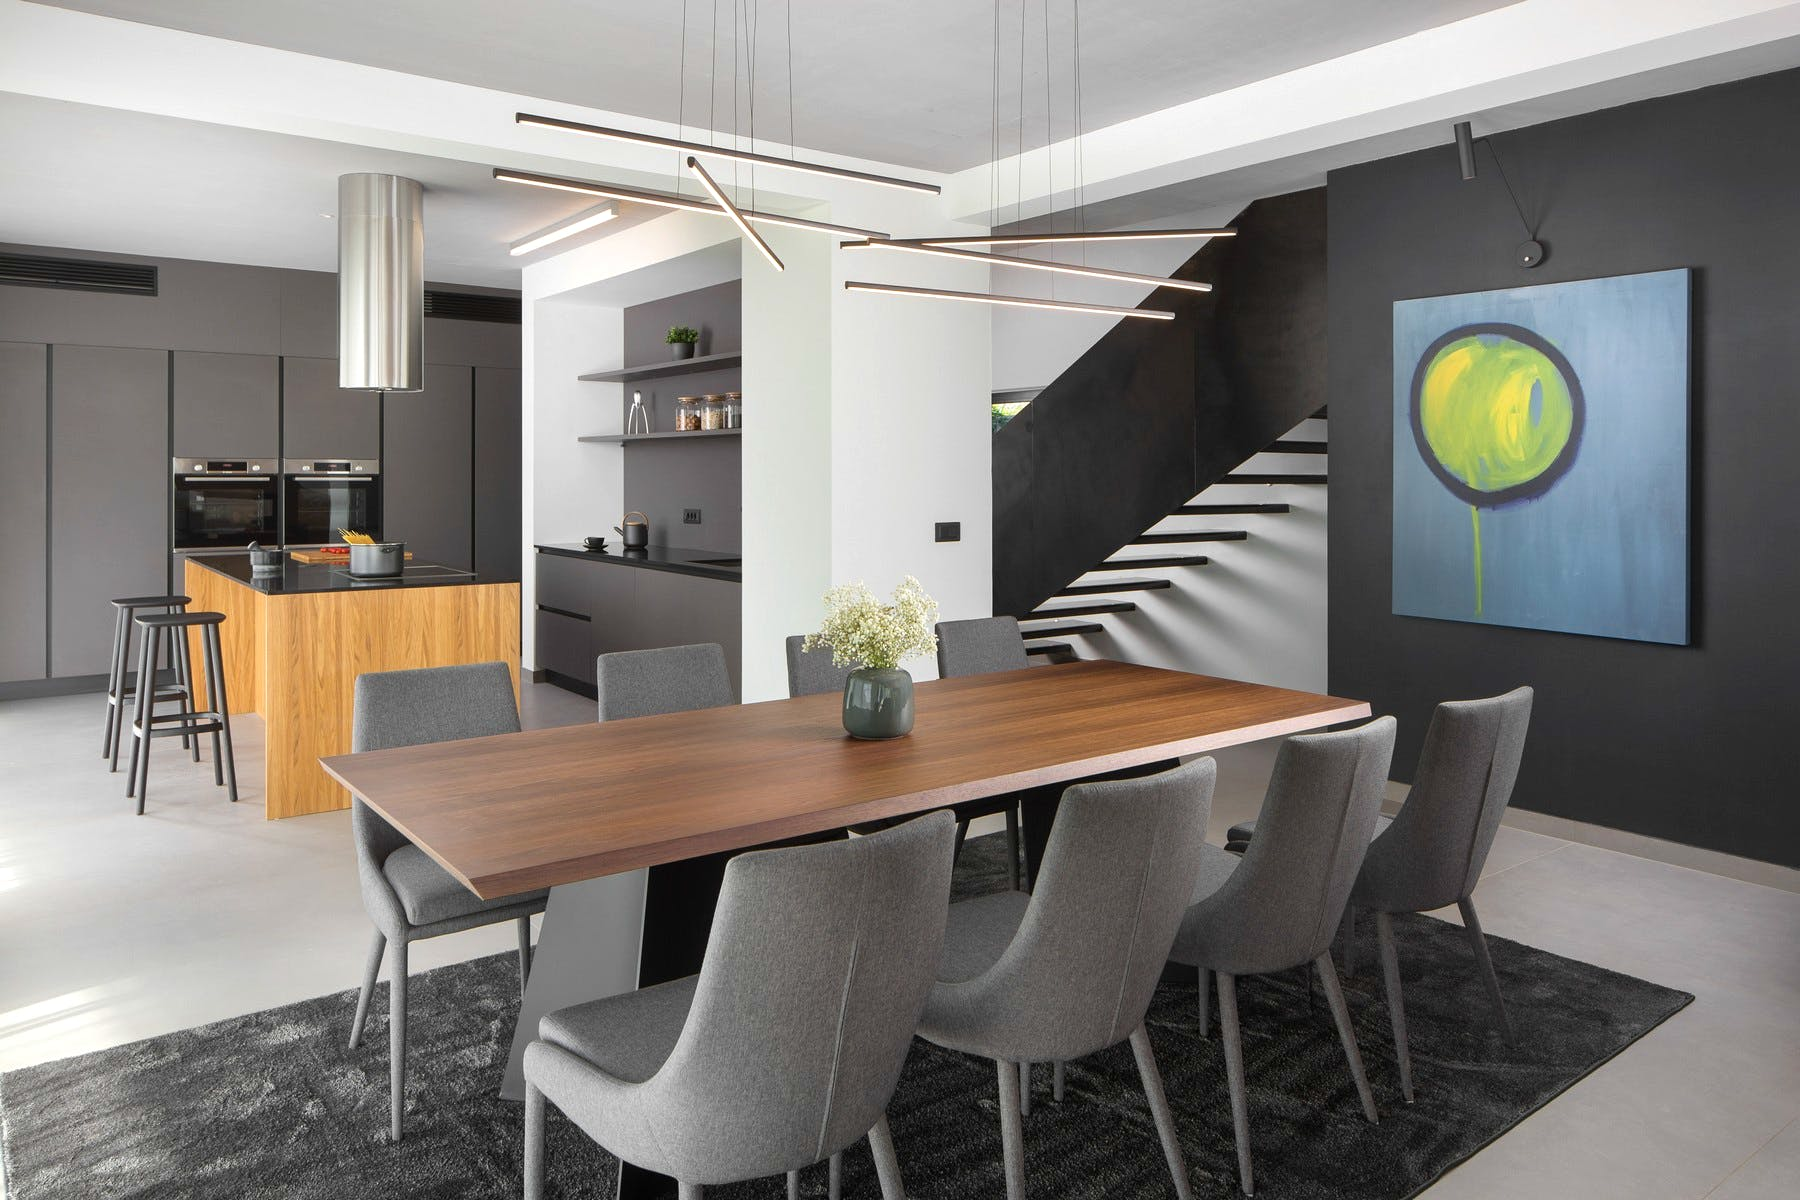 Fully-fitted kitchen with dining area